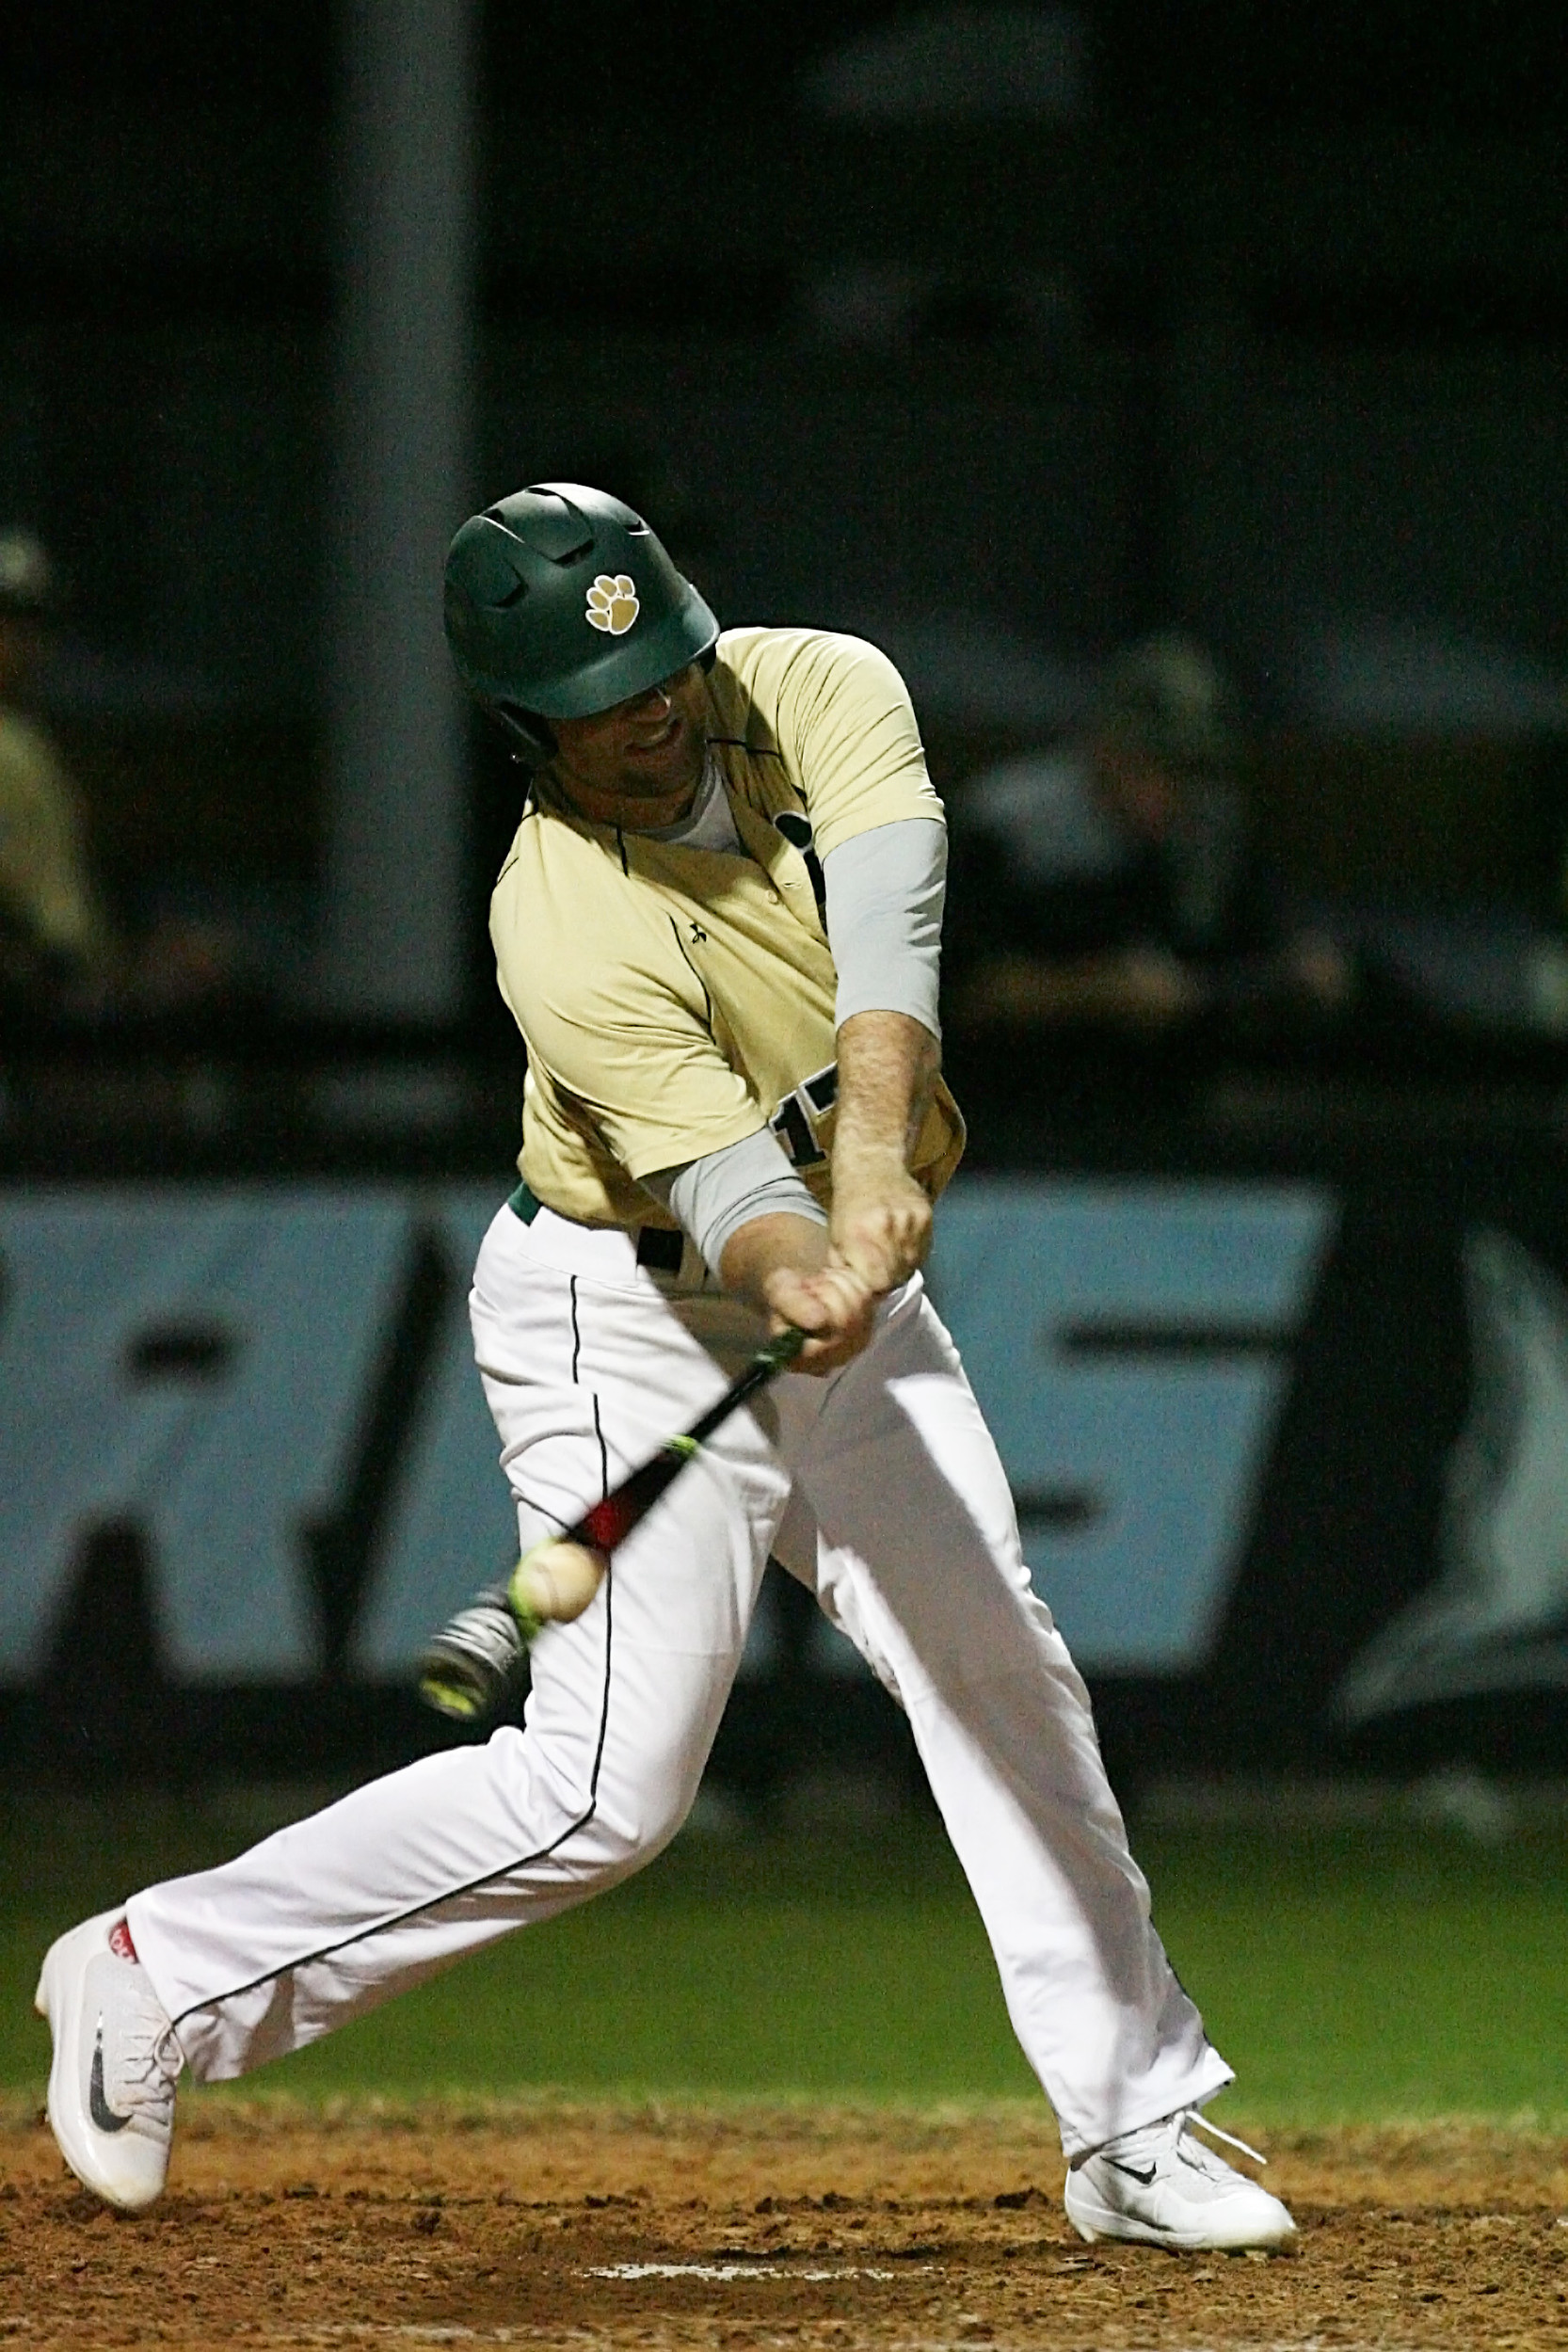 Nease's Leighton Alley, #17, makes contact at the plate.